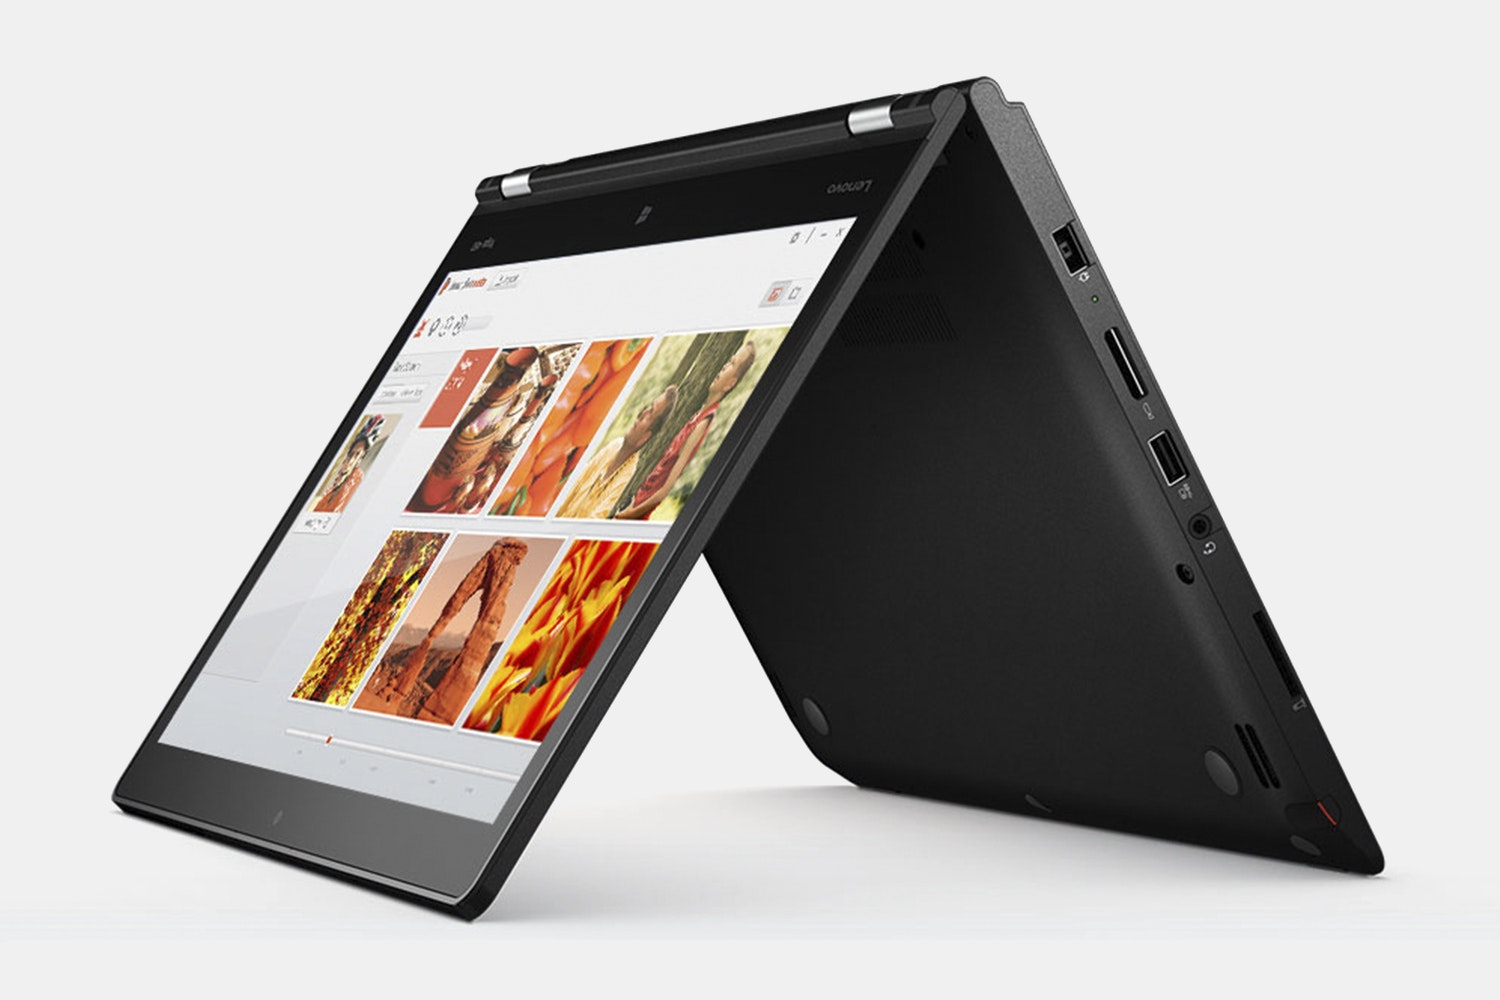 Lenovo ThinkPad Yoga 460 Touchscreen